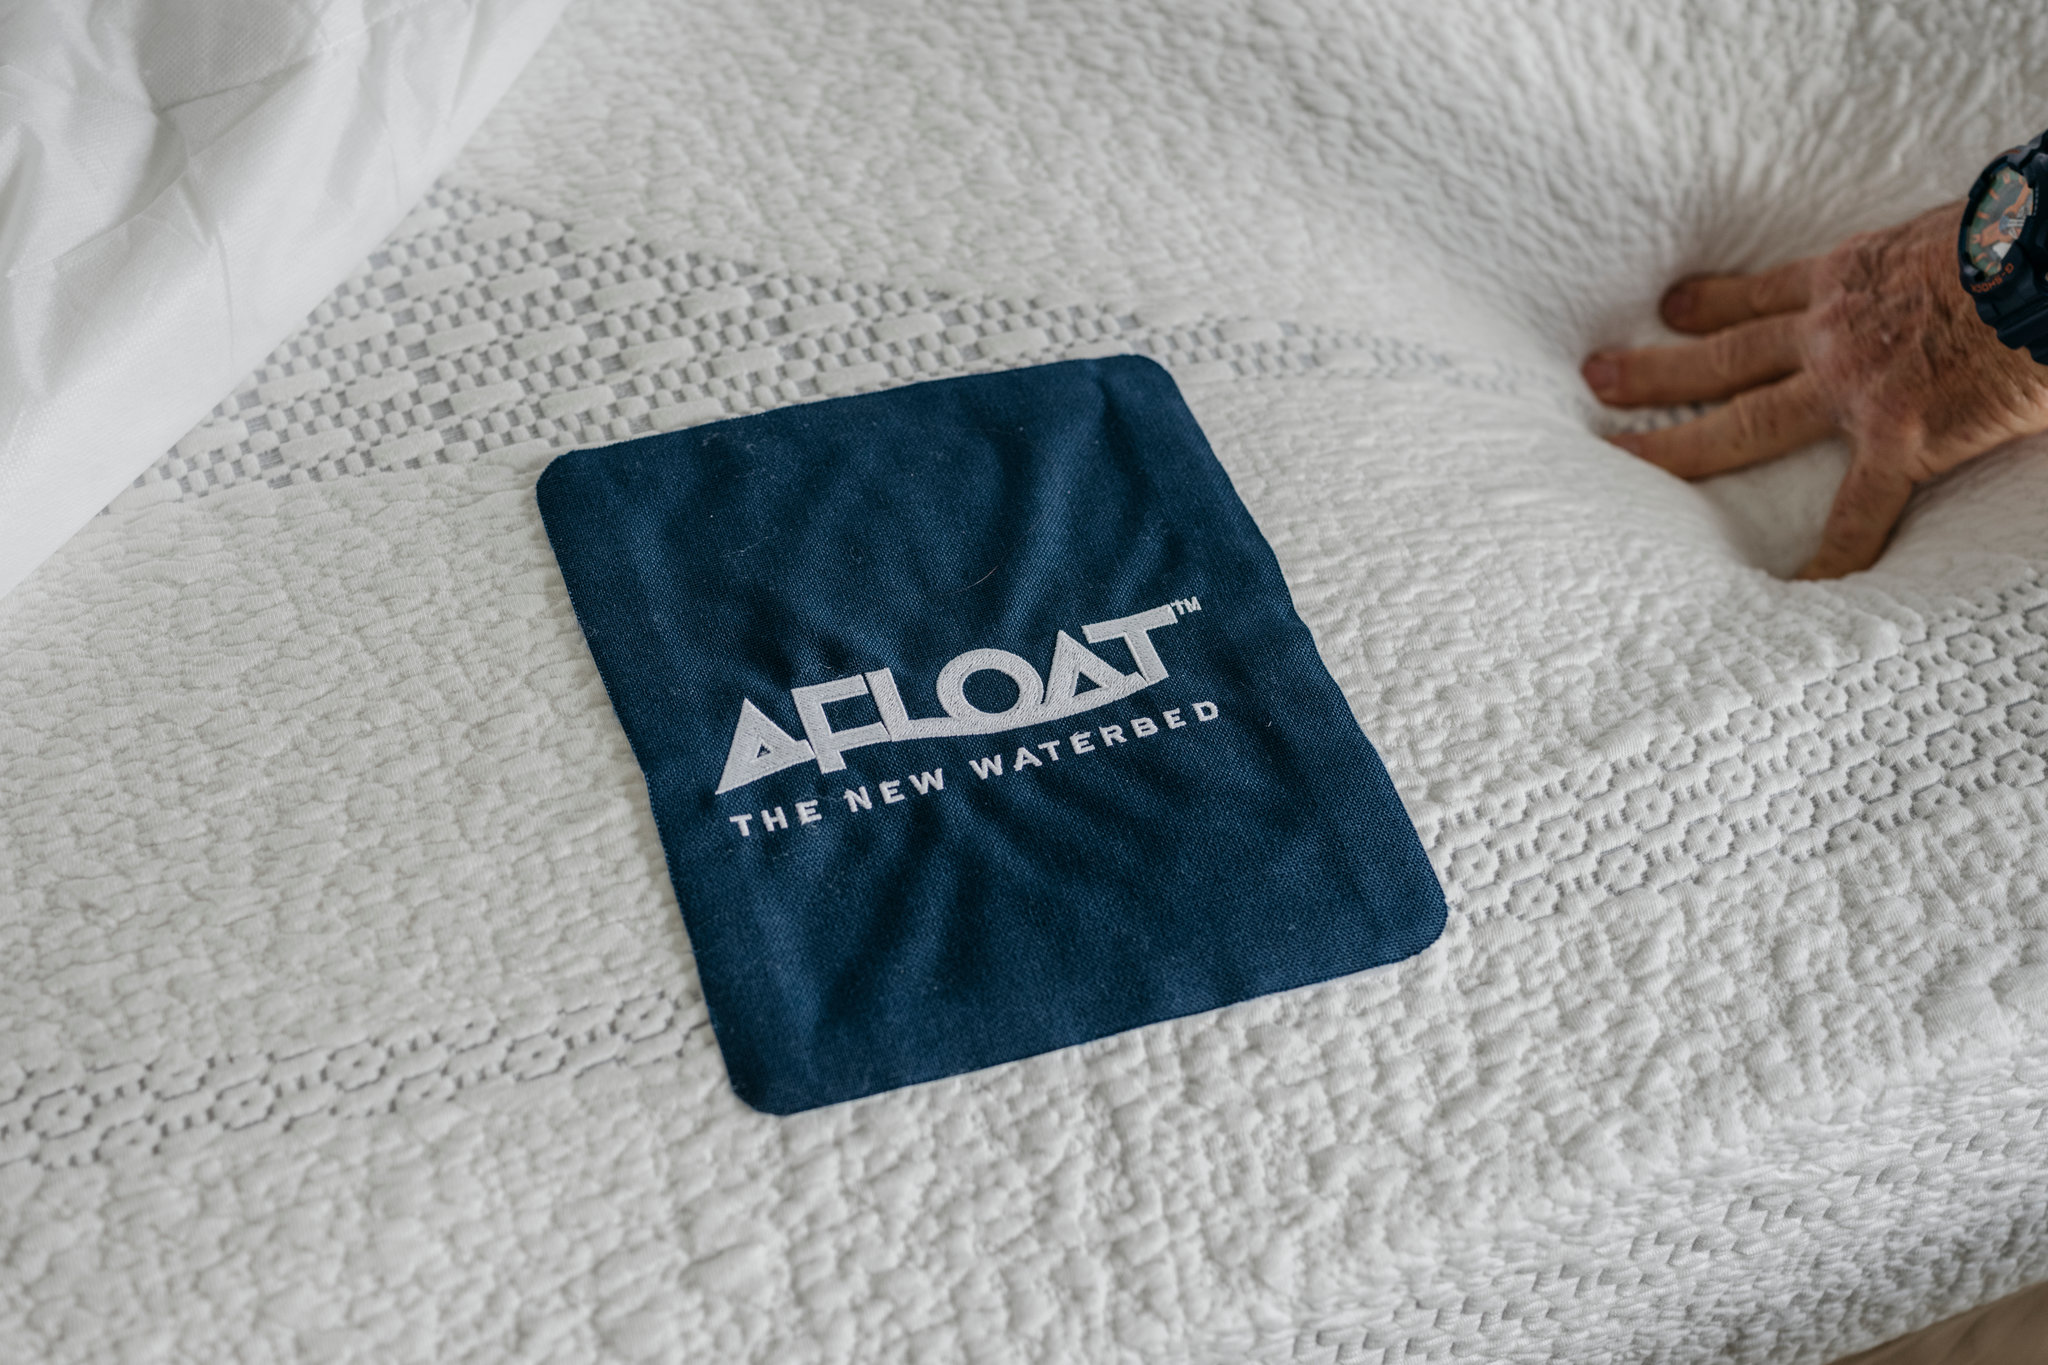 Afloat's logo on a bed in Mr. Hall's home.  Credit  Ian C. Bates for The New York Times